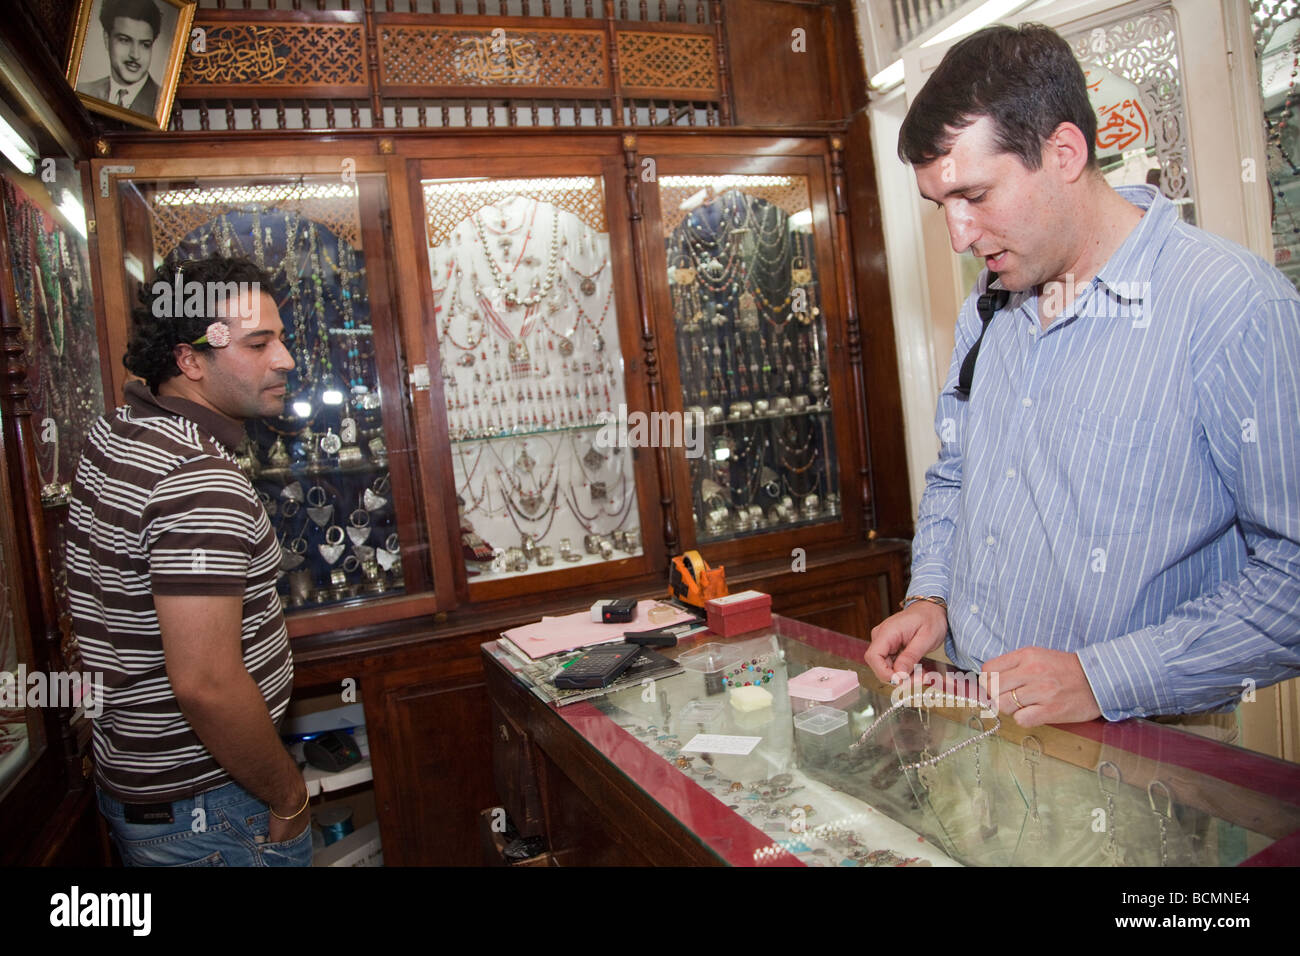 An American tourist buys a silver necklace in a jewelry store in the Tunis Medina (old city). - Stock Image